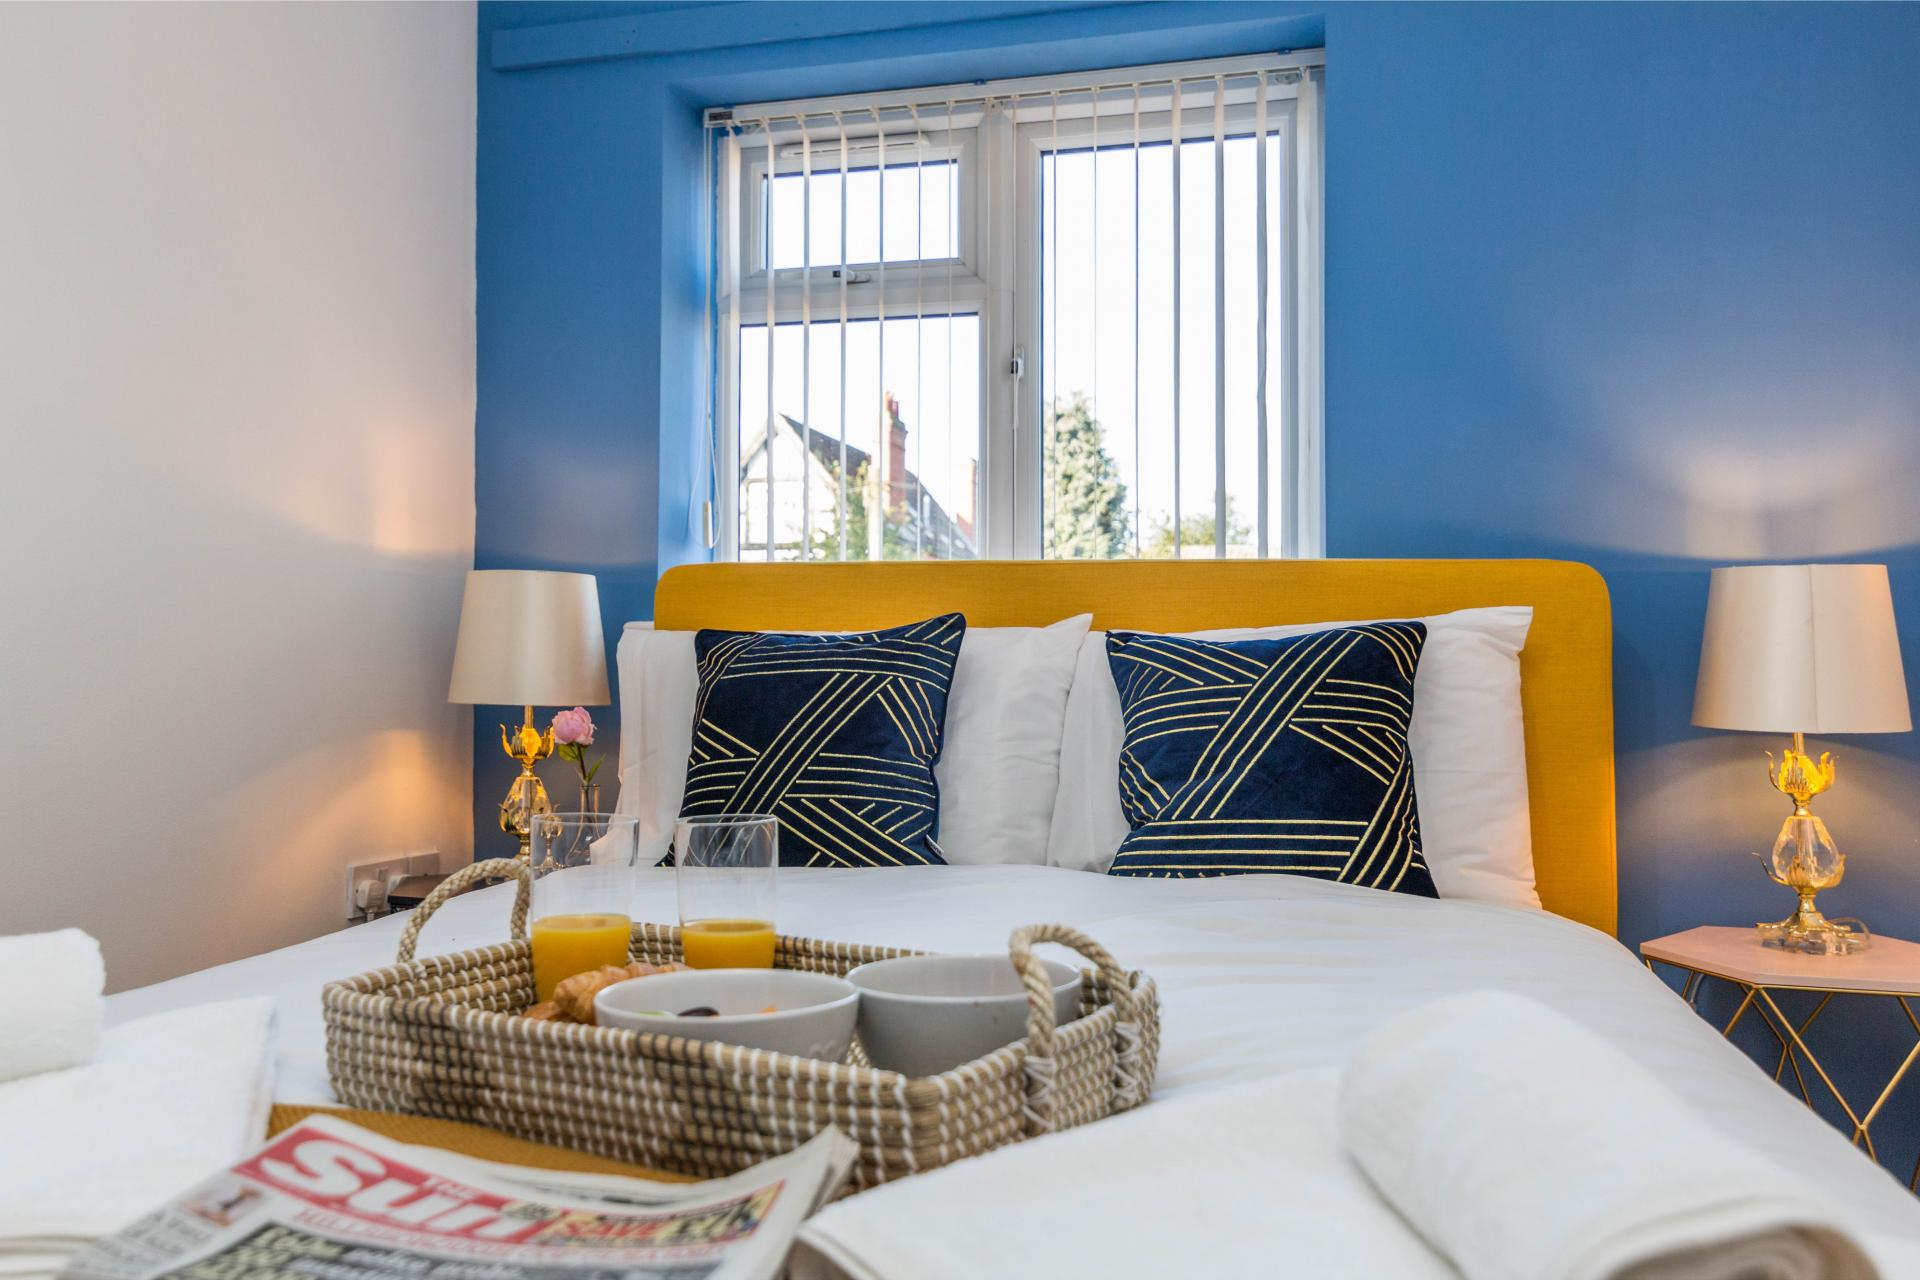 Breakfast in bed at Mayo House, Carrington, Nottingham - Citybase Apartments